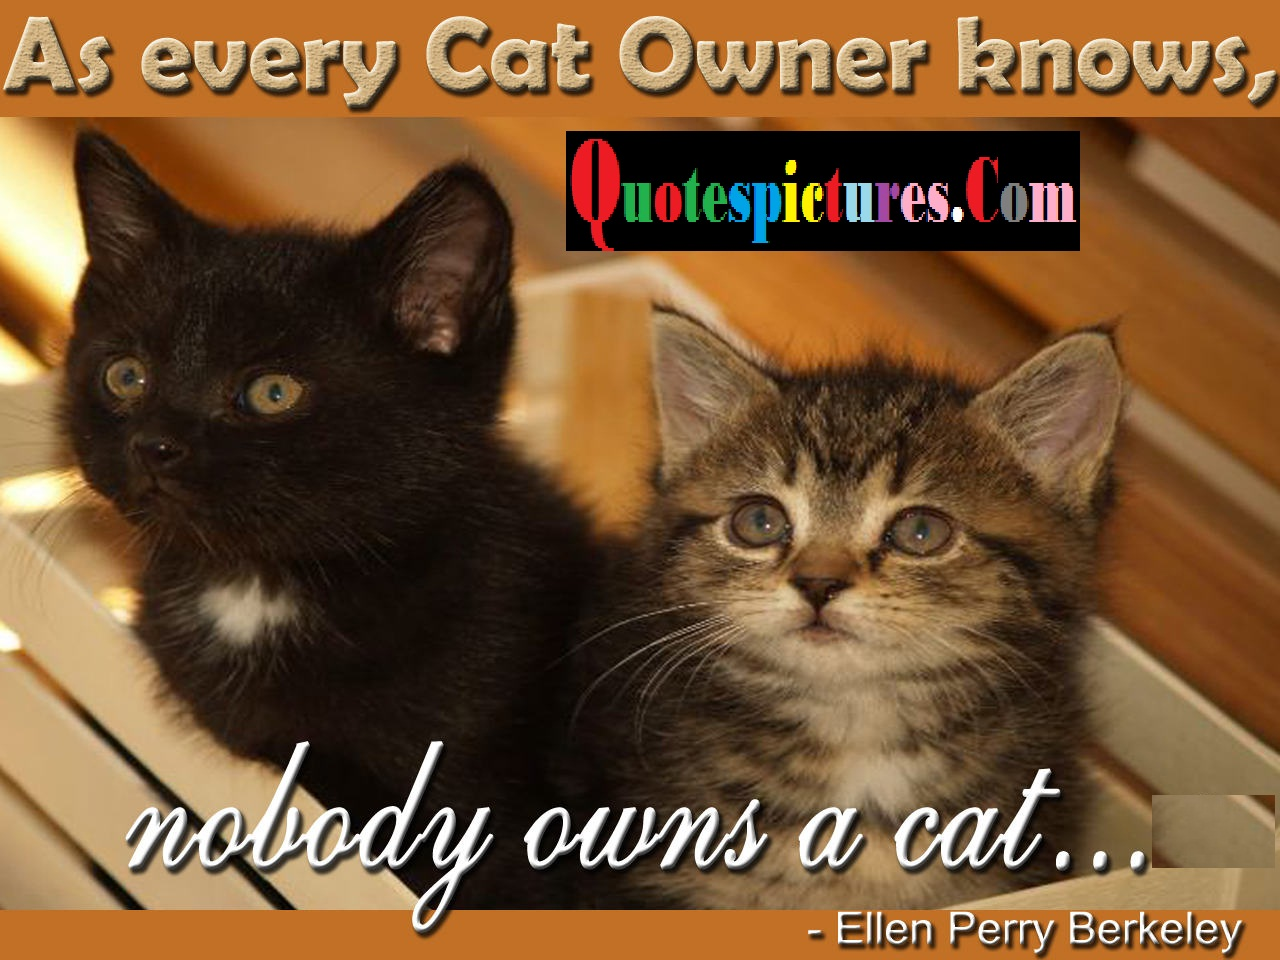 Cat Quotes - As Every Cat Owner Knows By Elien Perry Berkeley